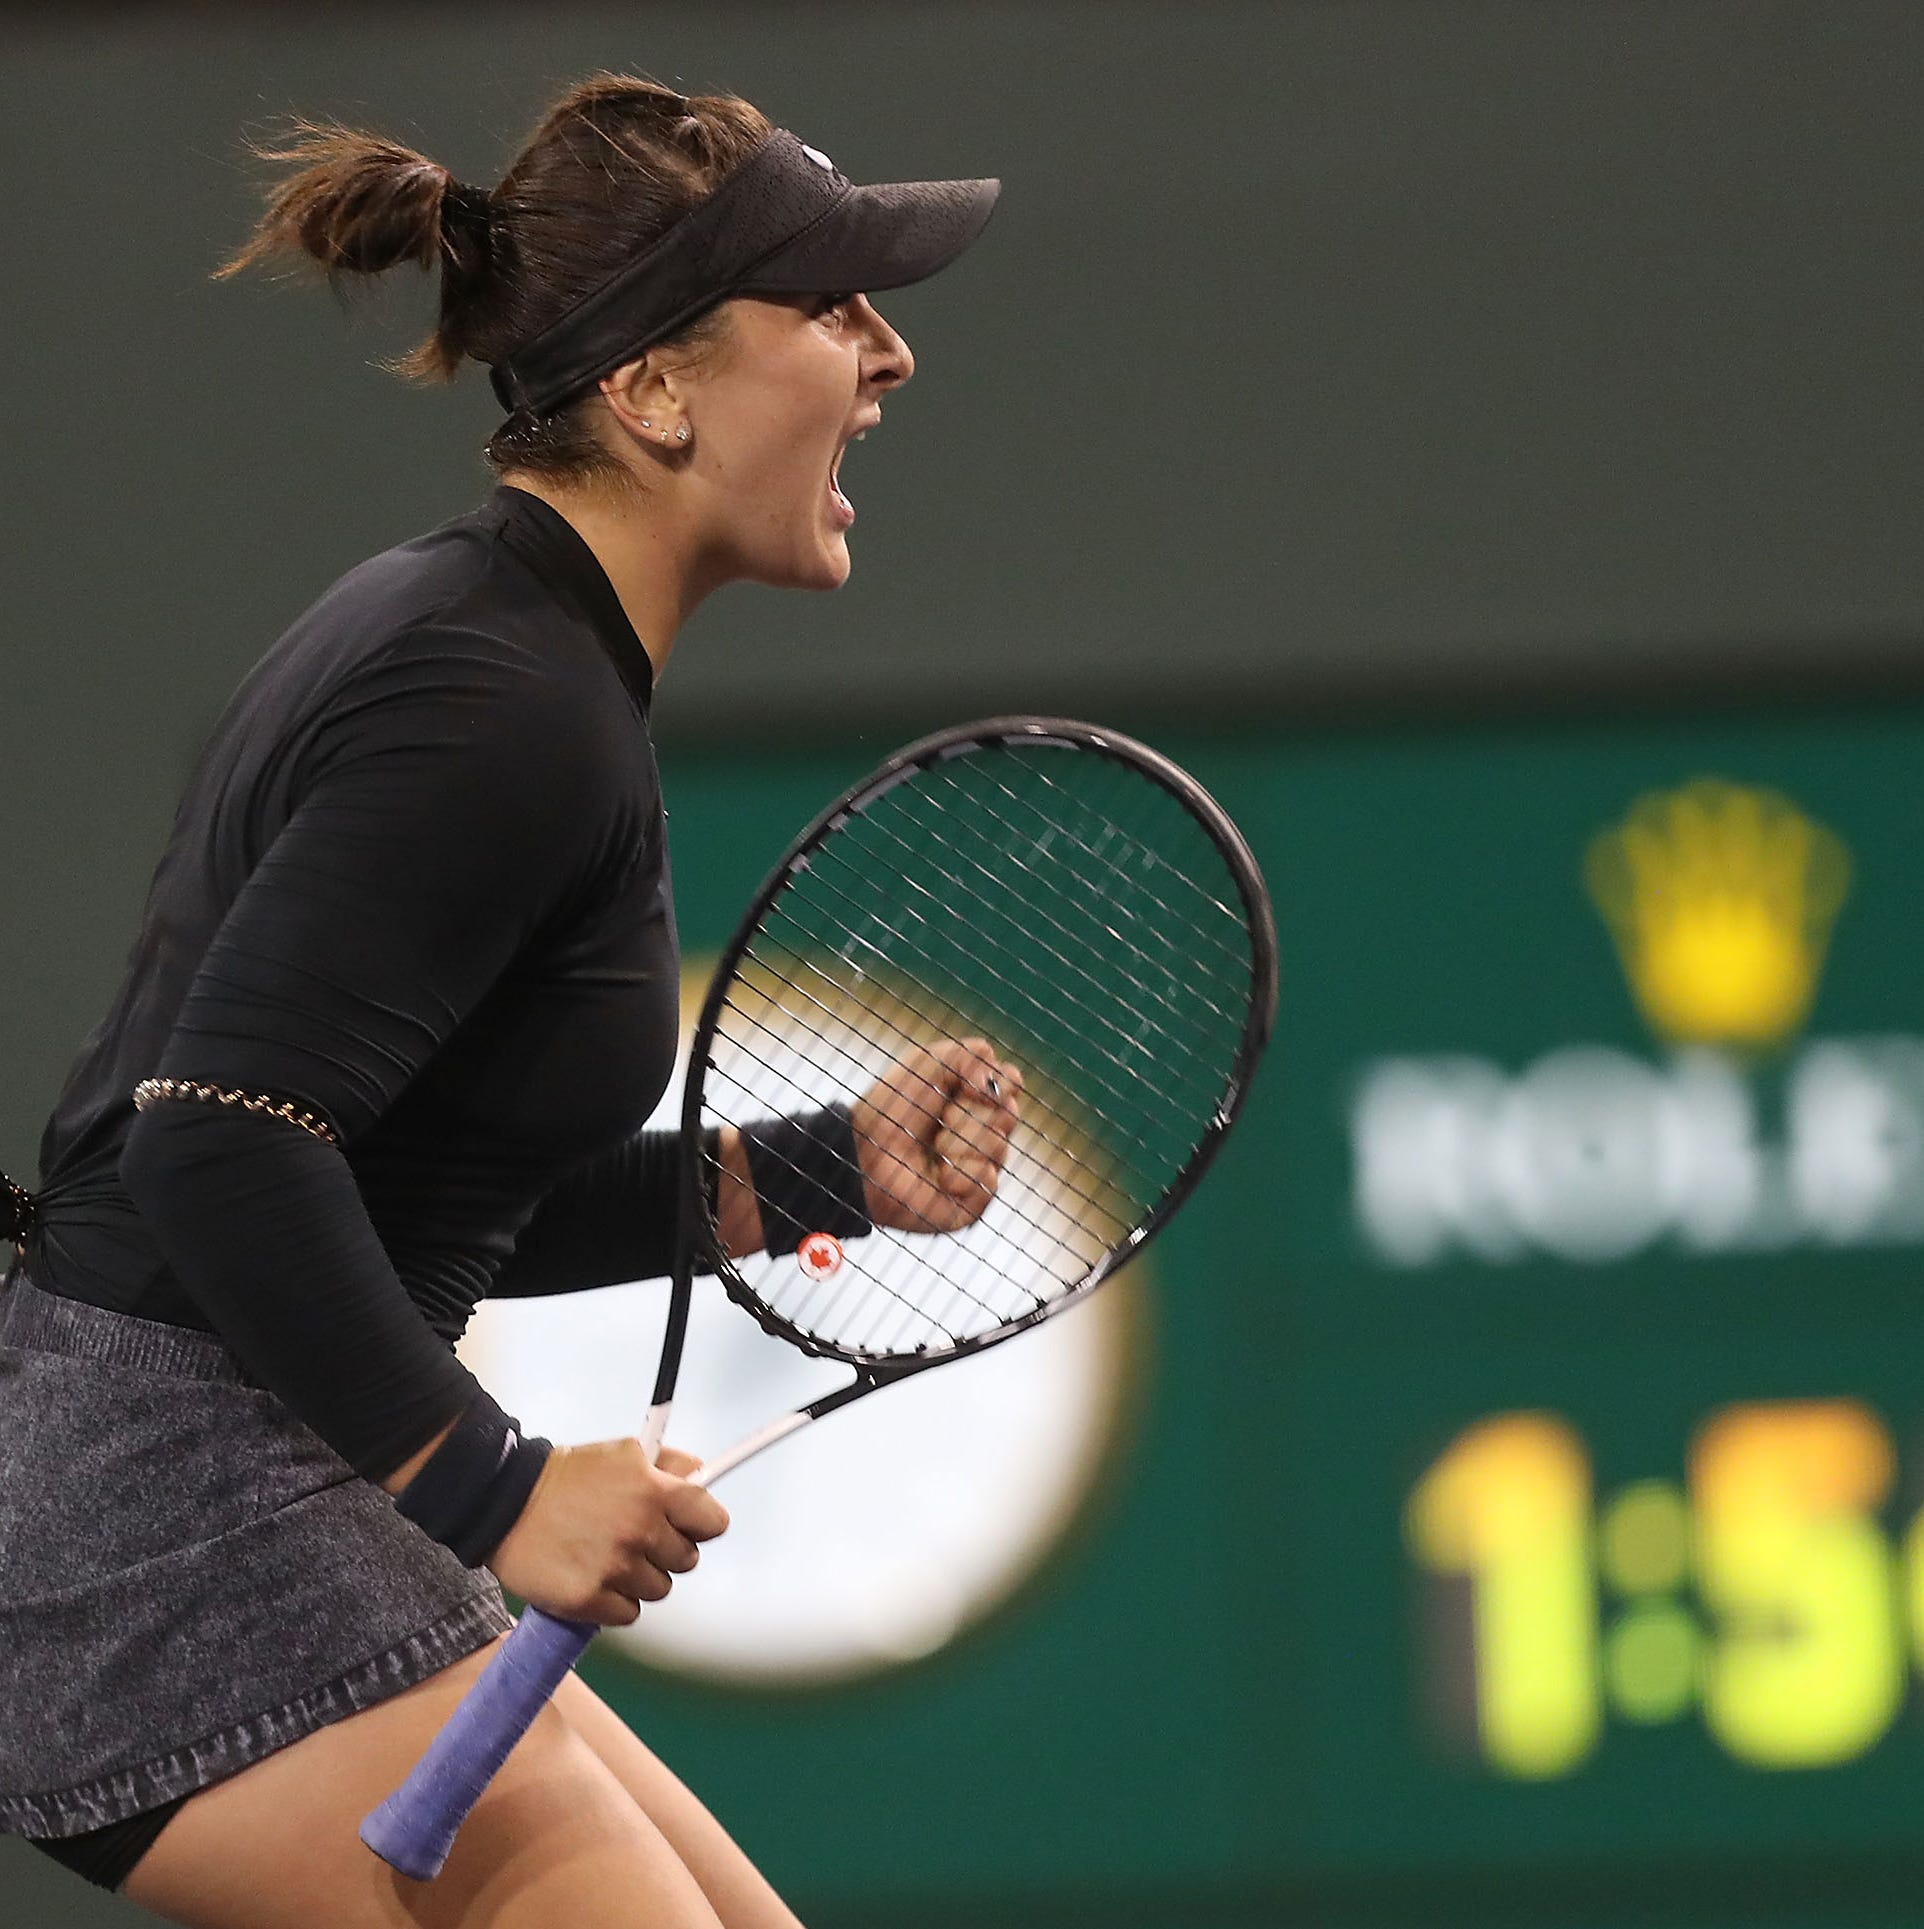 She's only 18, but Canadian Bianca Andreescu makes final, history at BNP Paribas Open